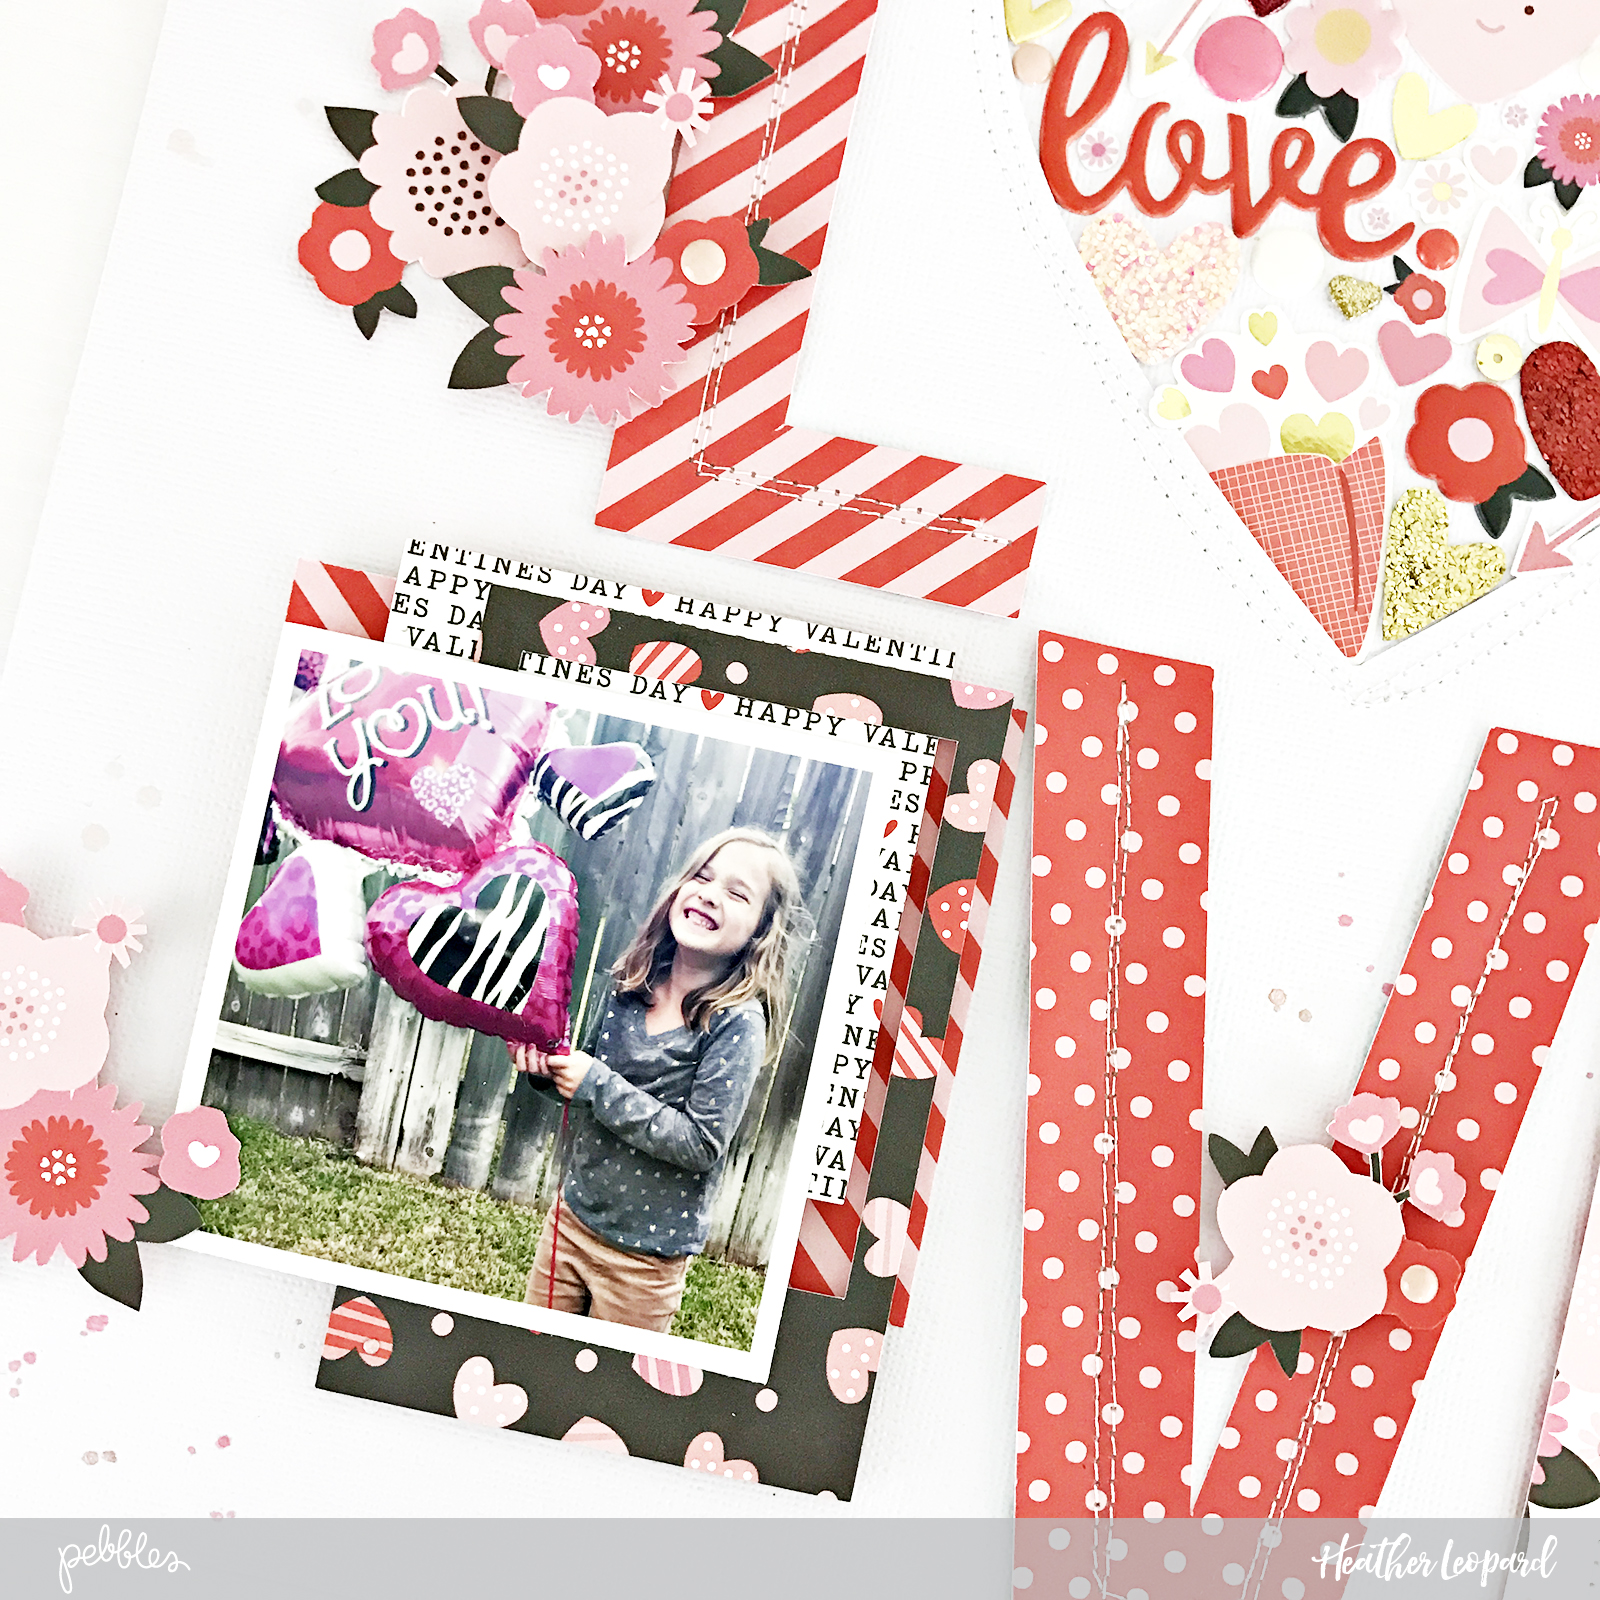 LOVE Scrapbooking layout, free cut file and tutorial from @heatherleopard and the #MyFunnyValentine collection by @pebblesinc #pebblesinc #valentines #diy #cutfile #love